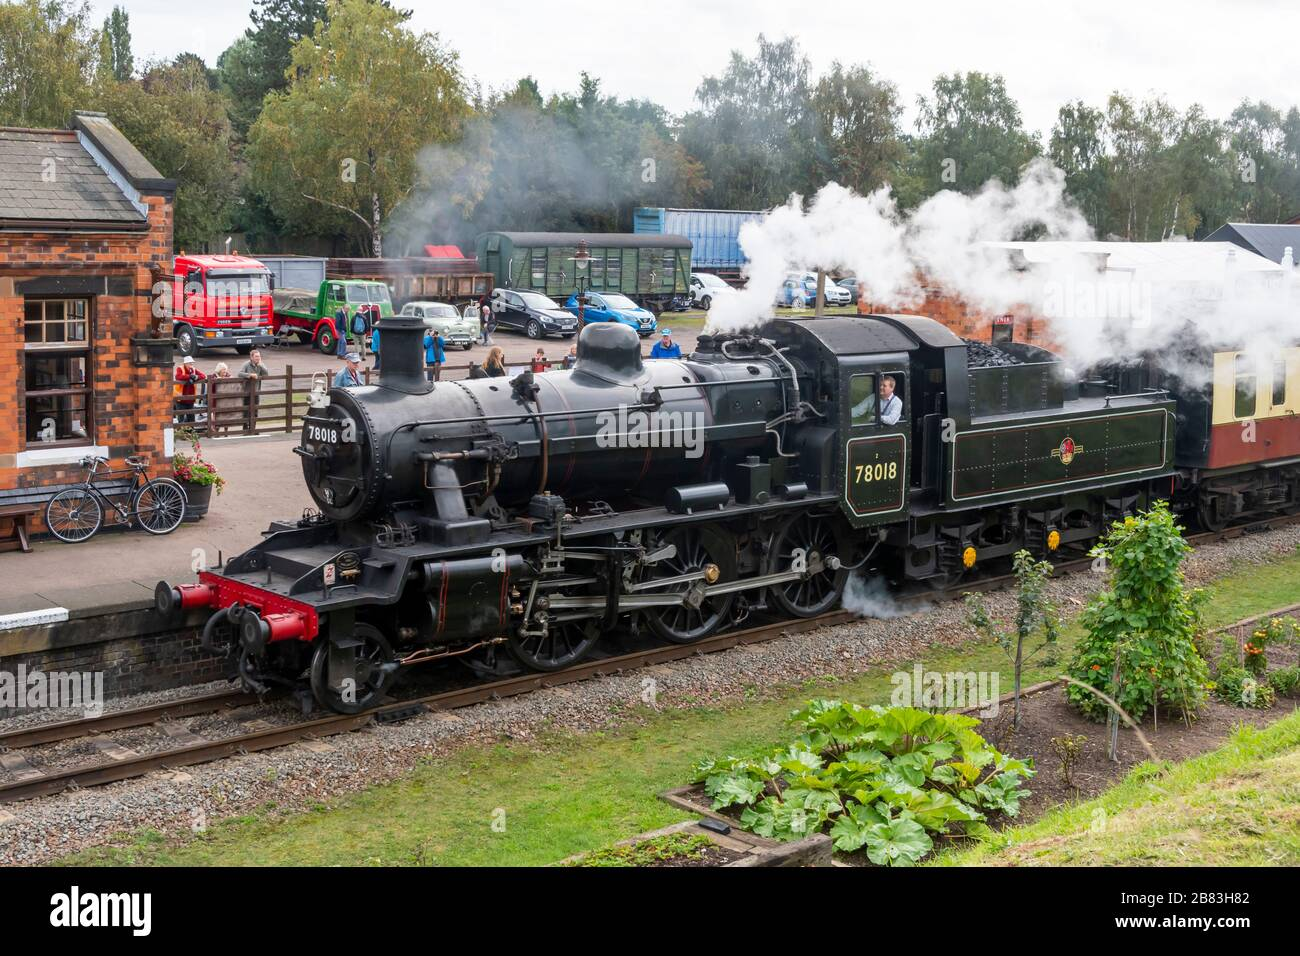 British Railways Standard Class 2 built at Darlington in 1953, 2-6-0 steam engine number 78018, Great Central Railway, Quorn, Leicestershire, England, Stock Photo